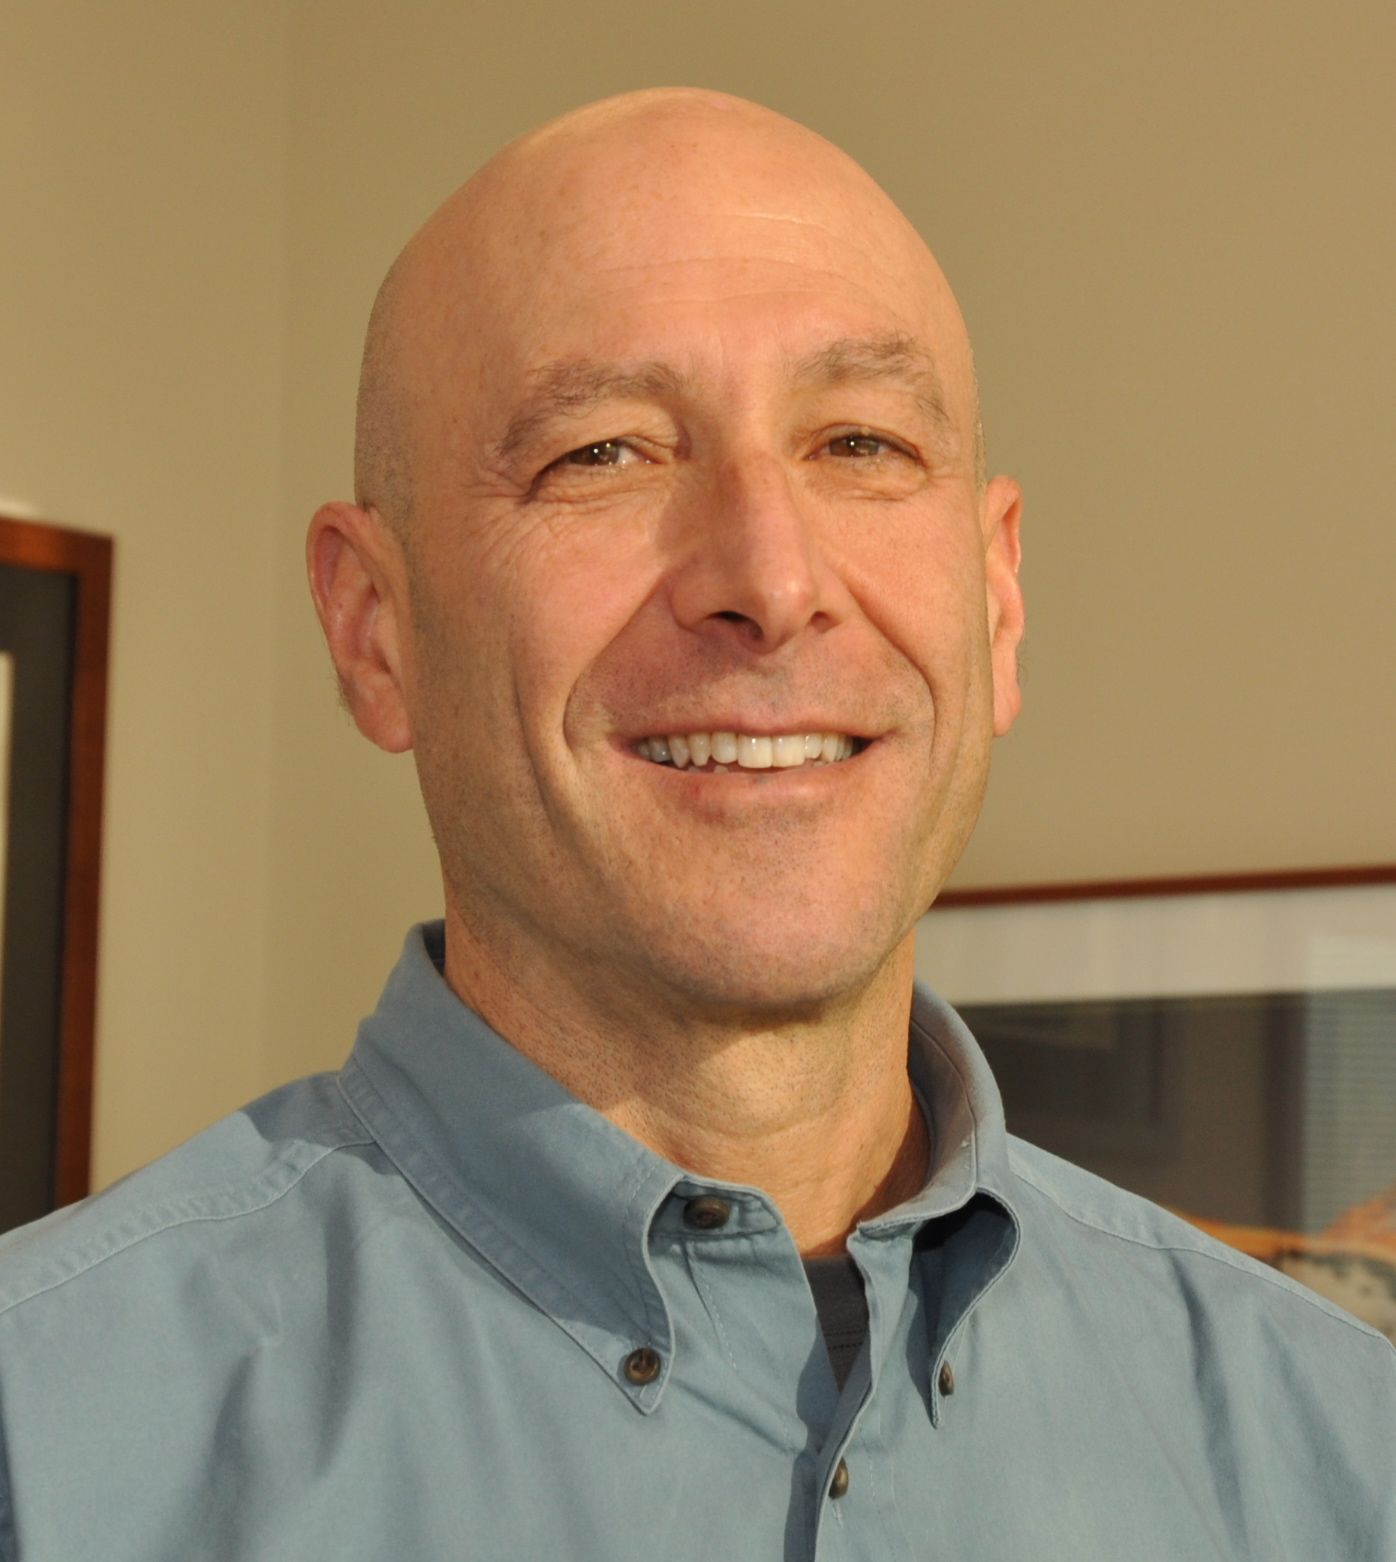 Dr. Jeff Duchin ,Health Officer at Public Health – Seattle & King County and Professor in the Division of Infectious Diseases at the University of Washington